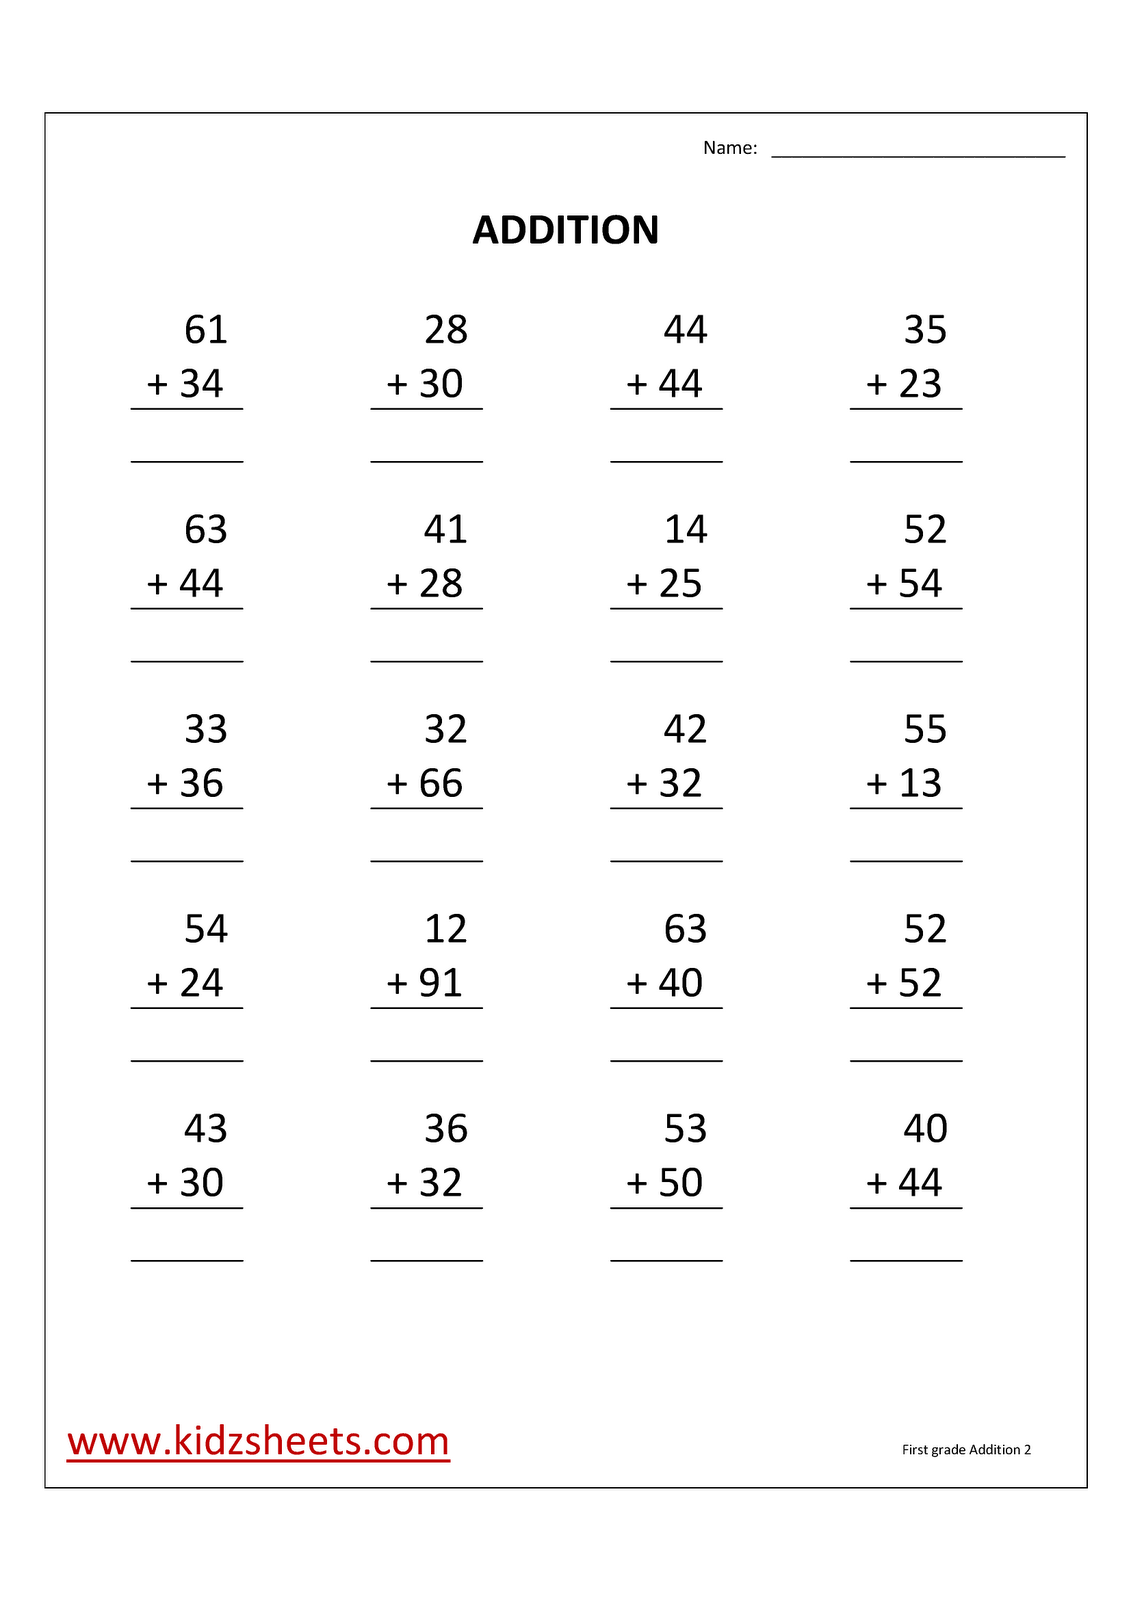 Addition Worksheet For 1st Grade Scalien – Addition Worksheets for 1st Graders